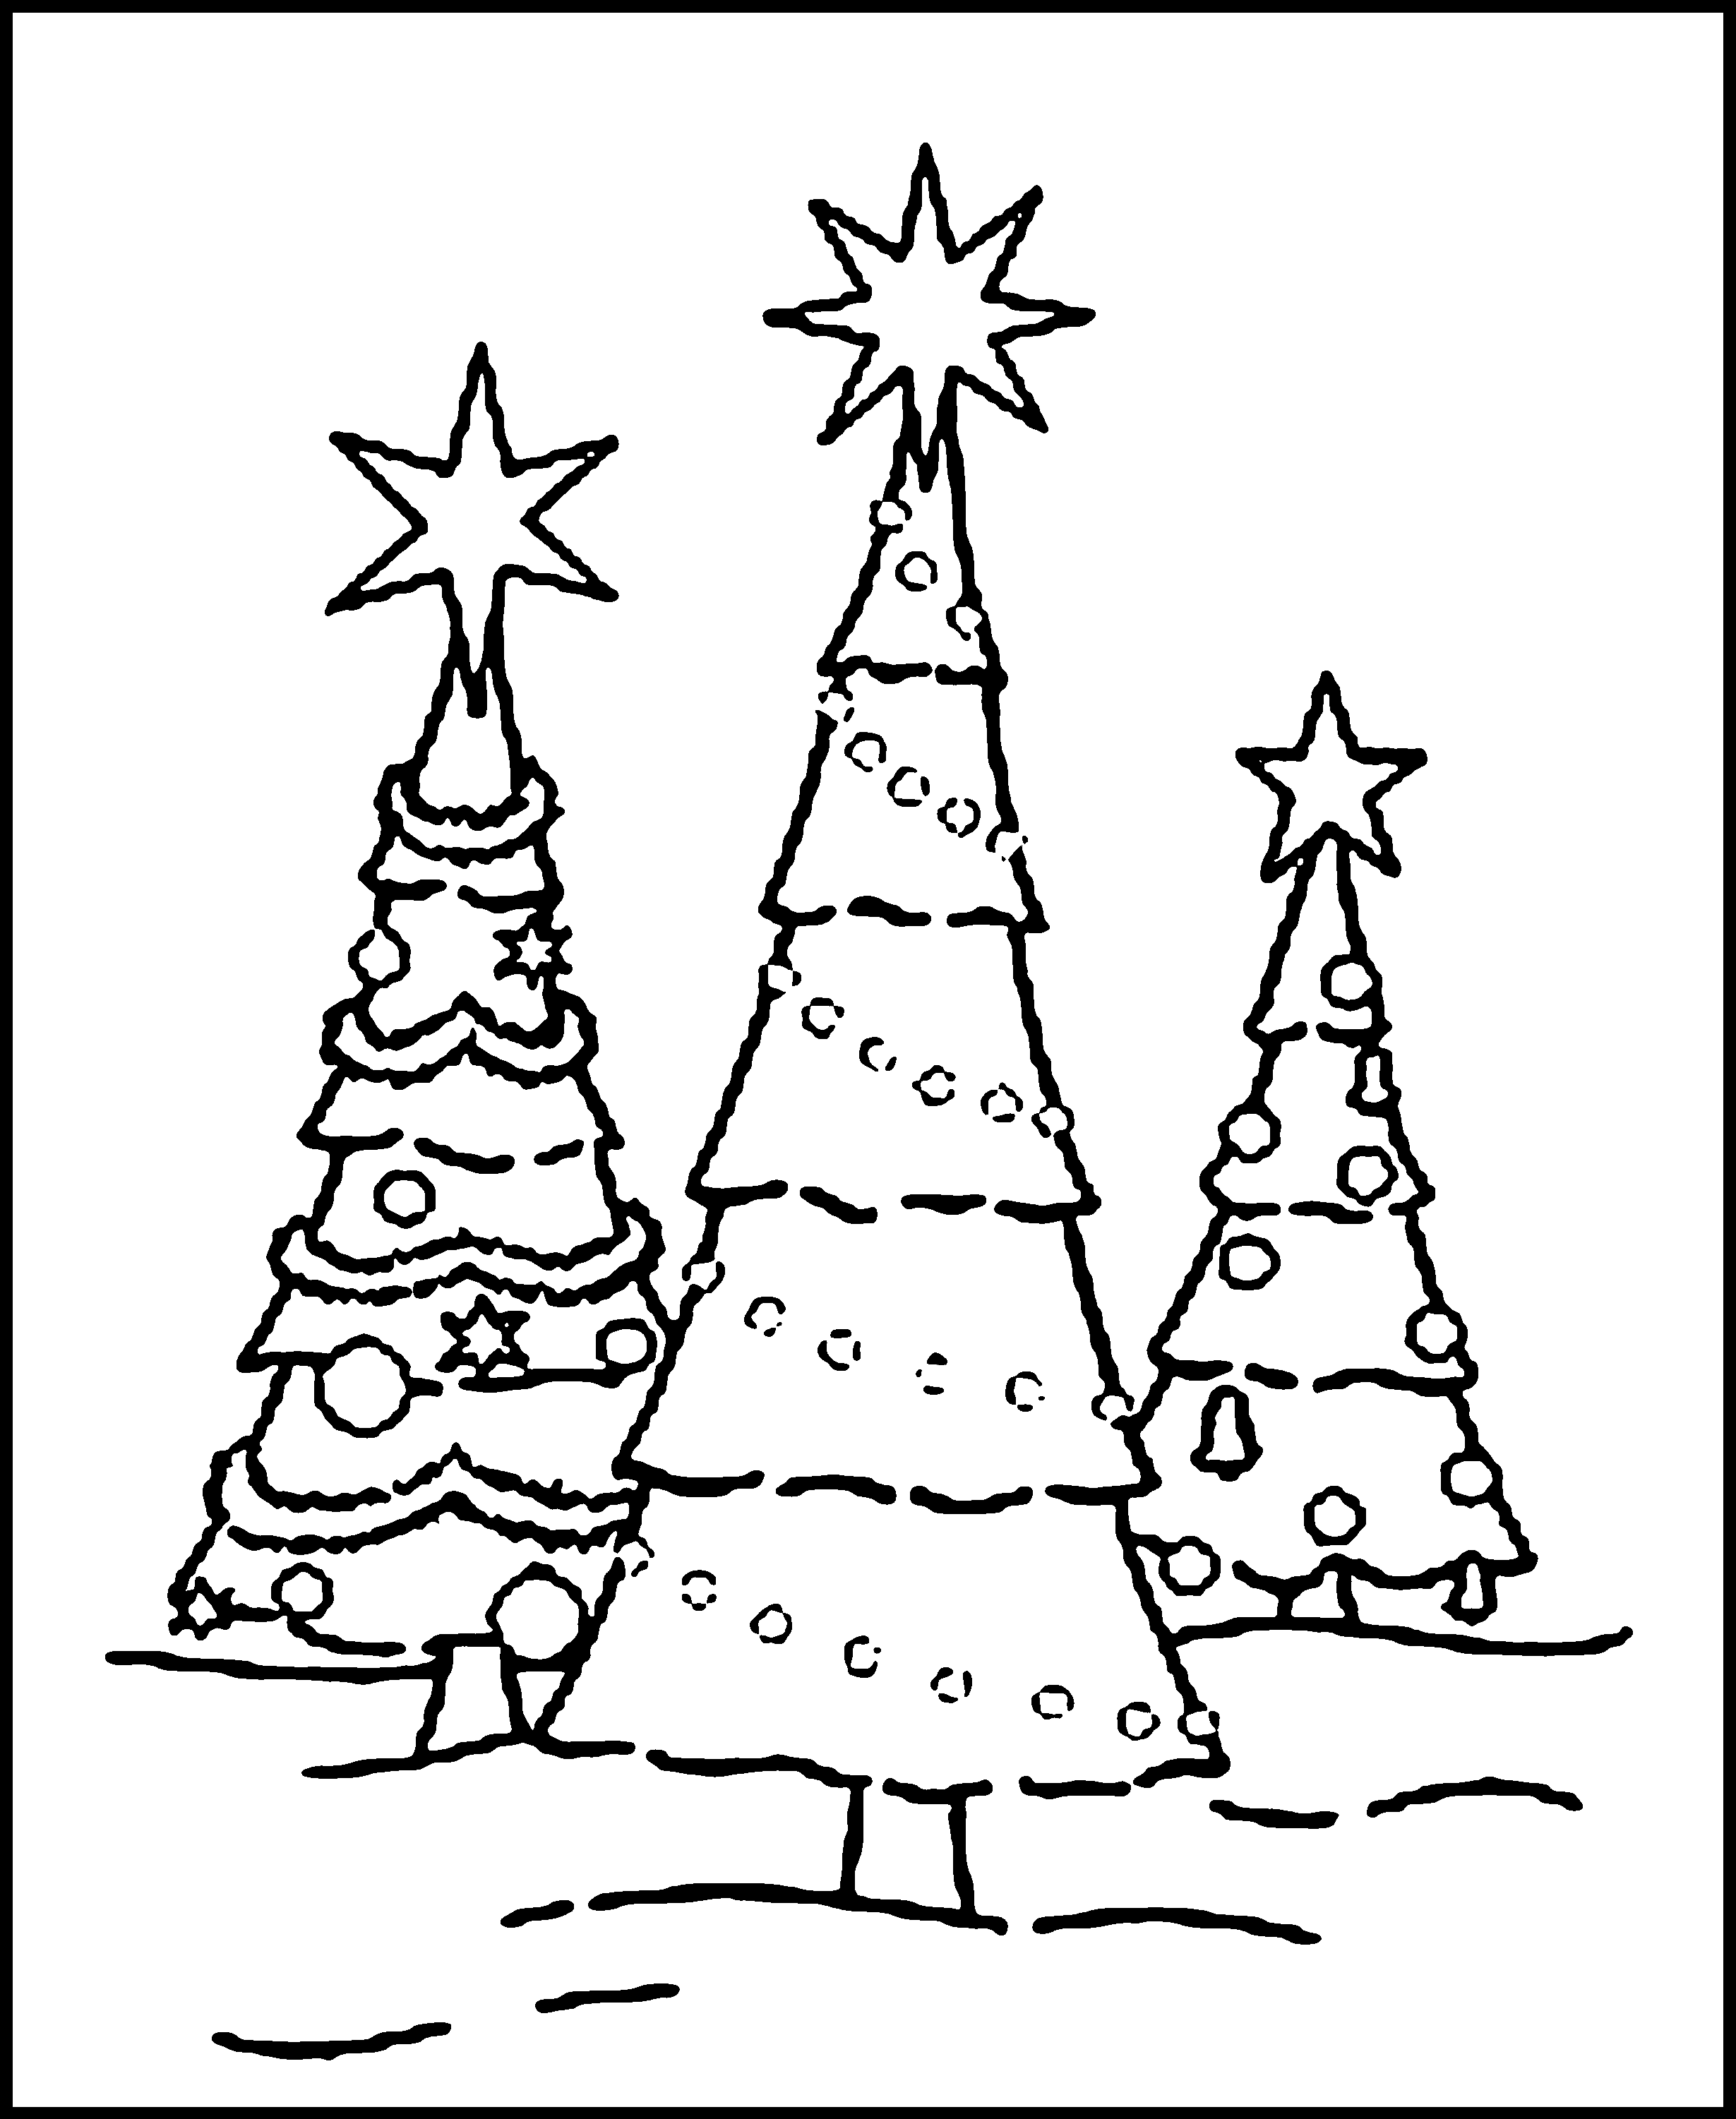 Coloring pages printable free christmas - Christmas Tree Color Pages